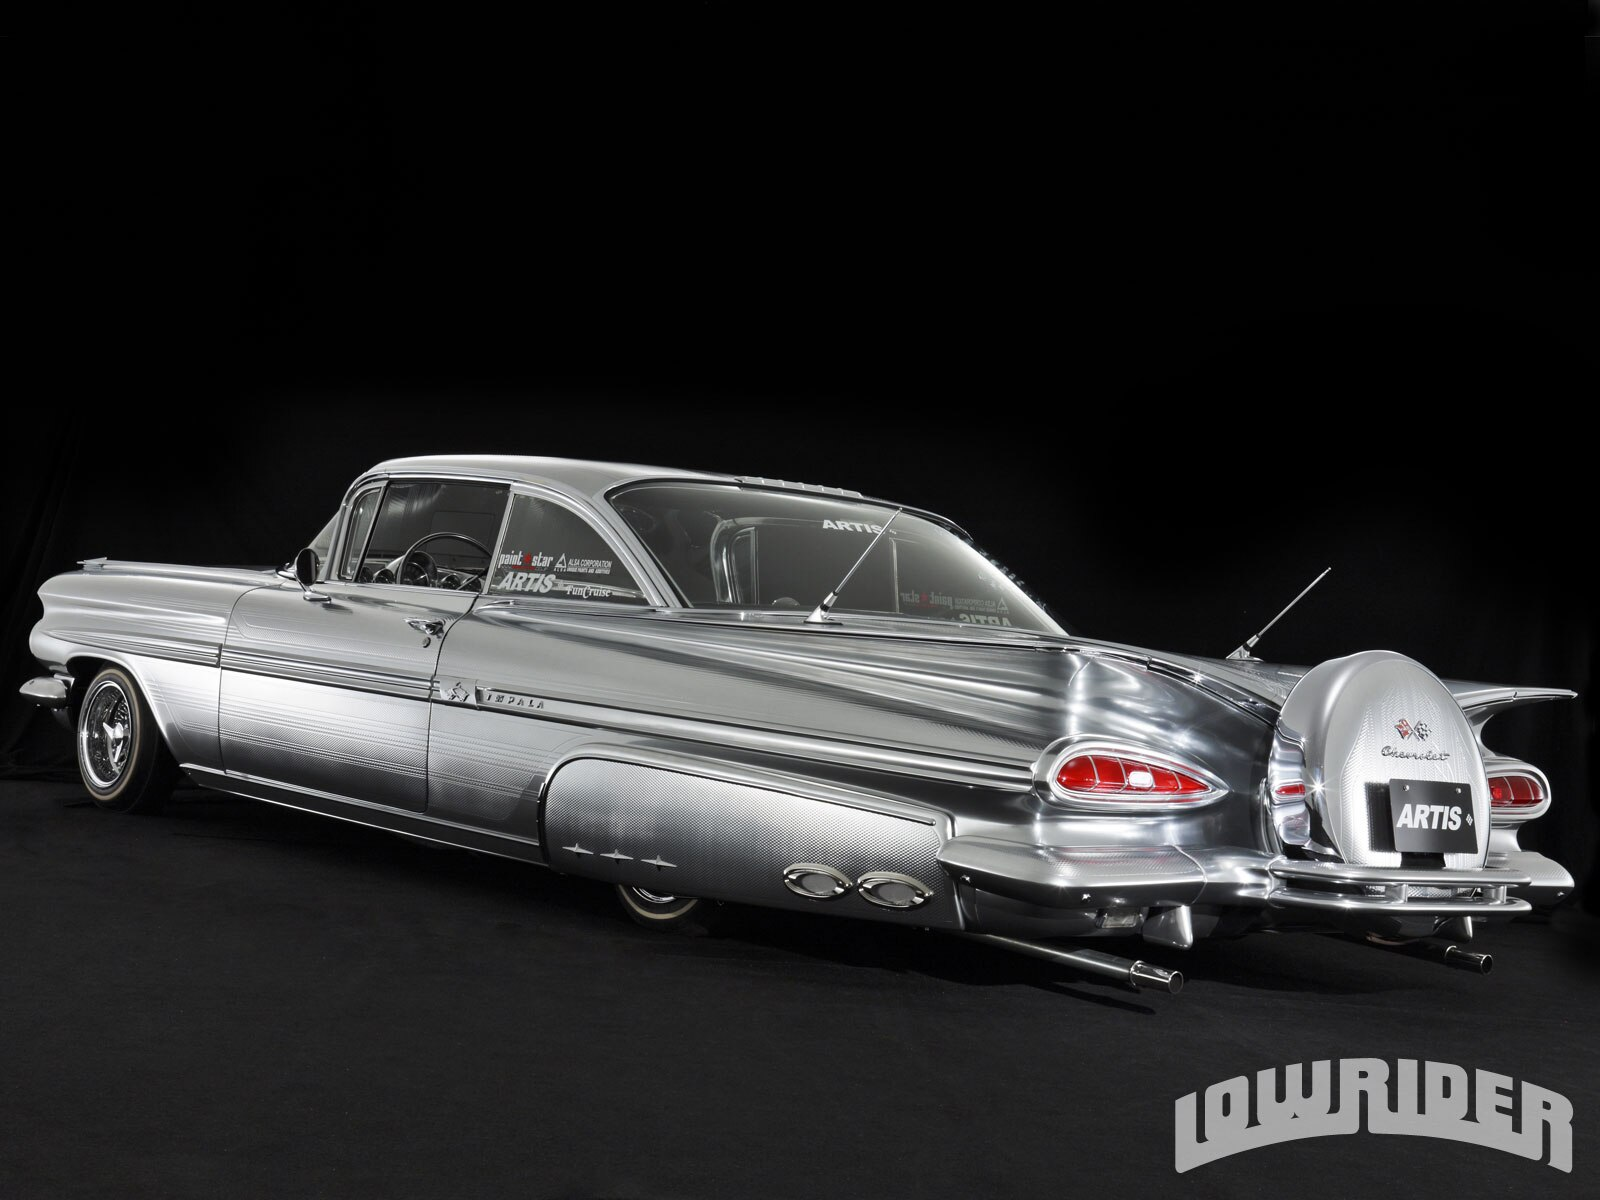 Cheap Chevy Impala Lowrider Wallpaper With